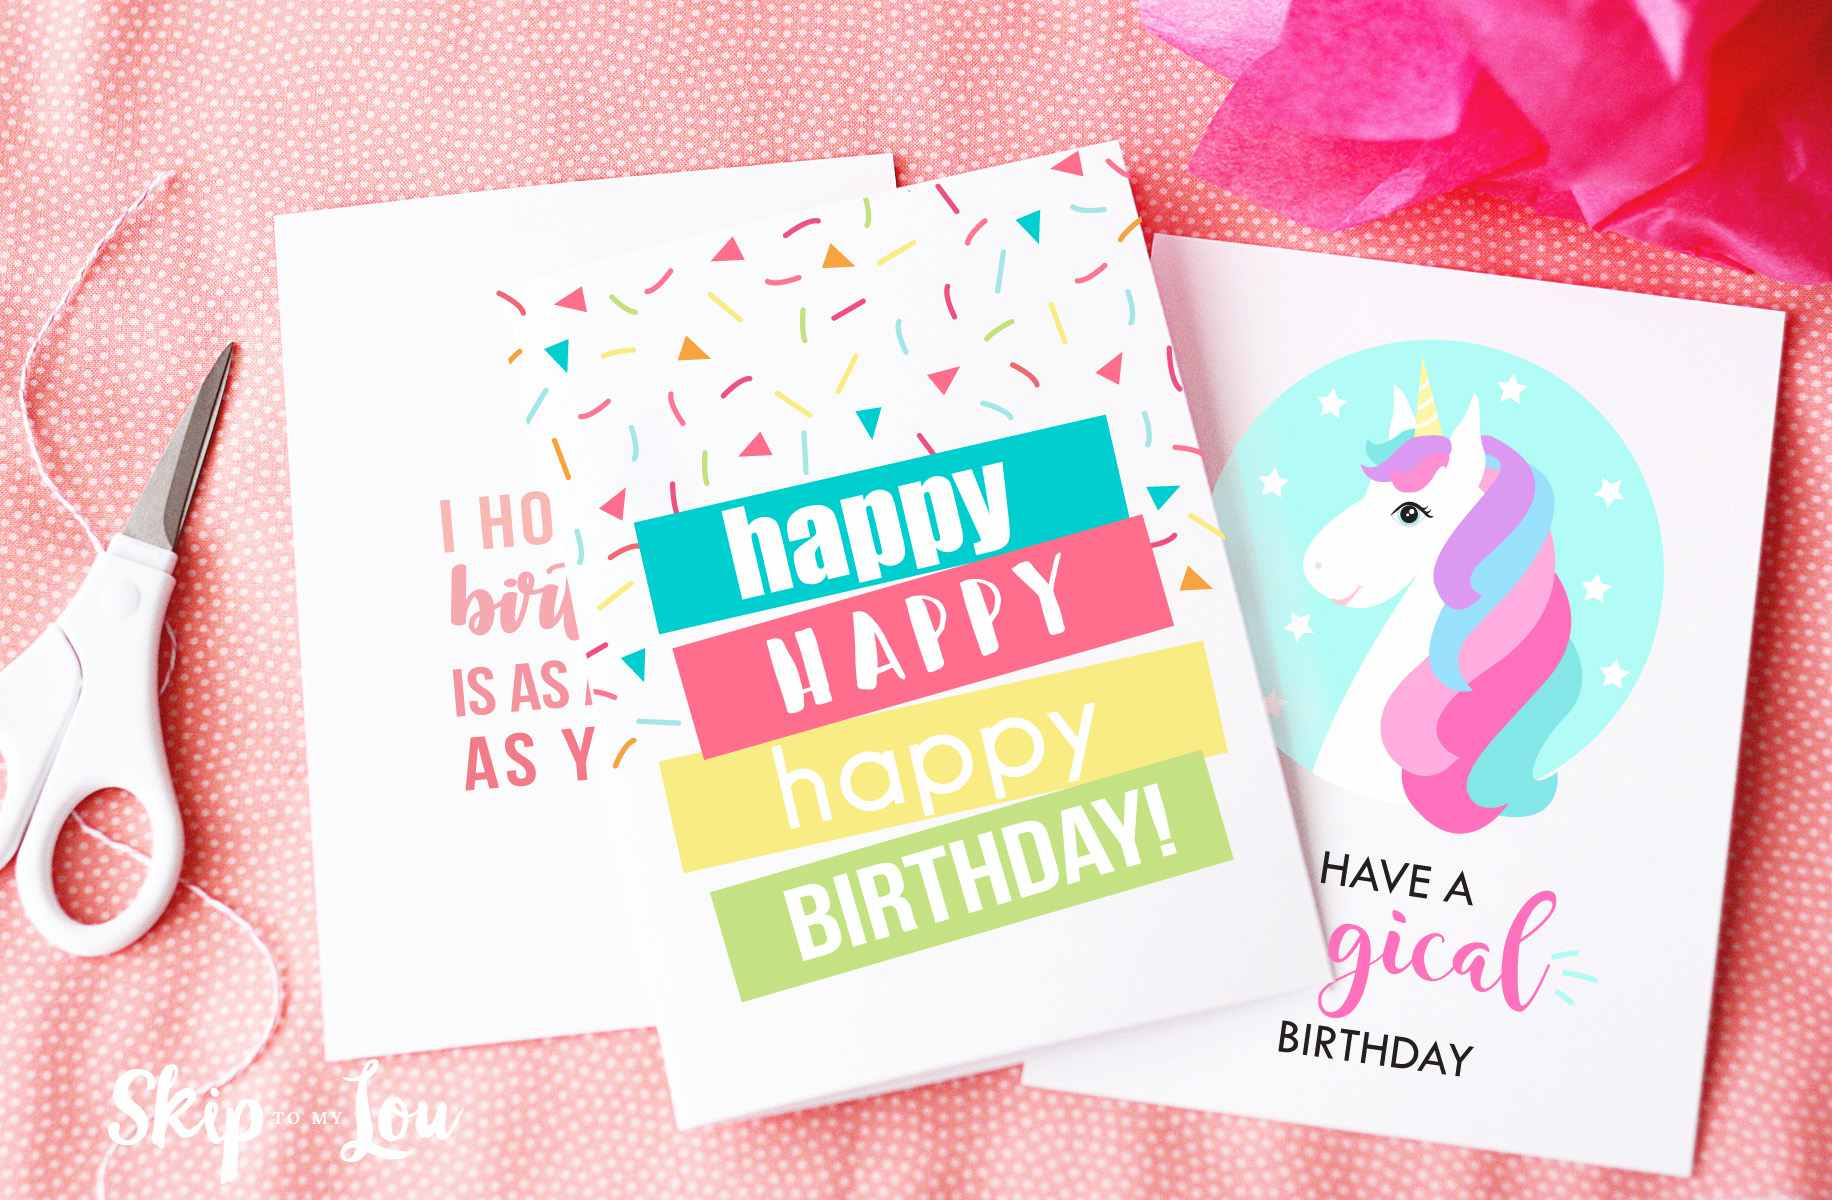 Three Birthday Cards On A Table With Scissors